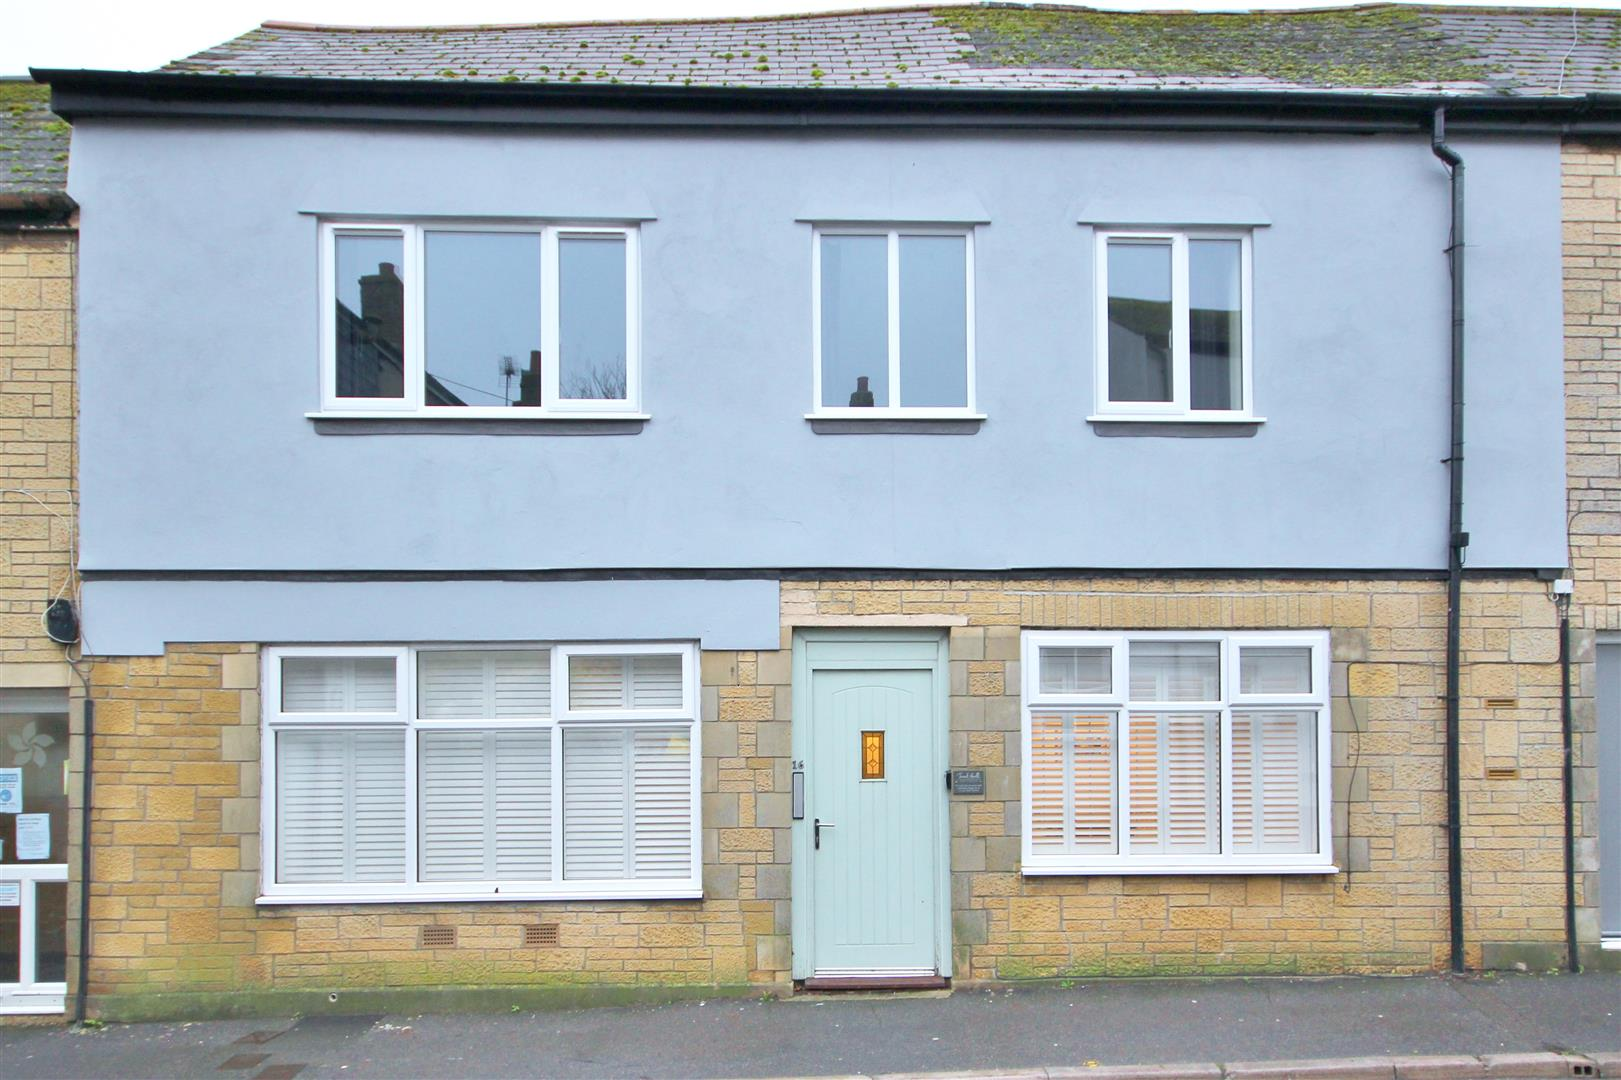 16 Church Street, Lyme Regis Image 1